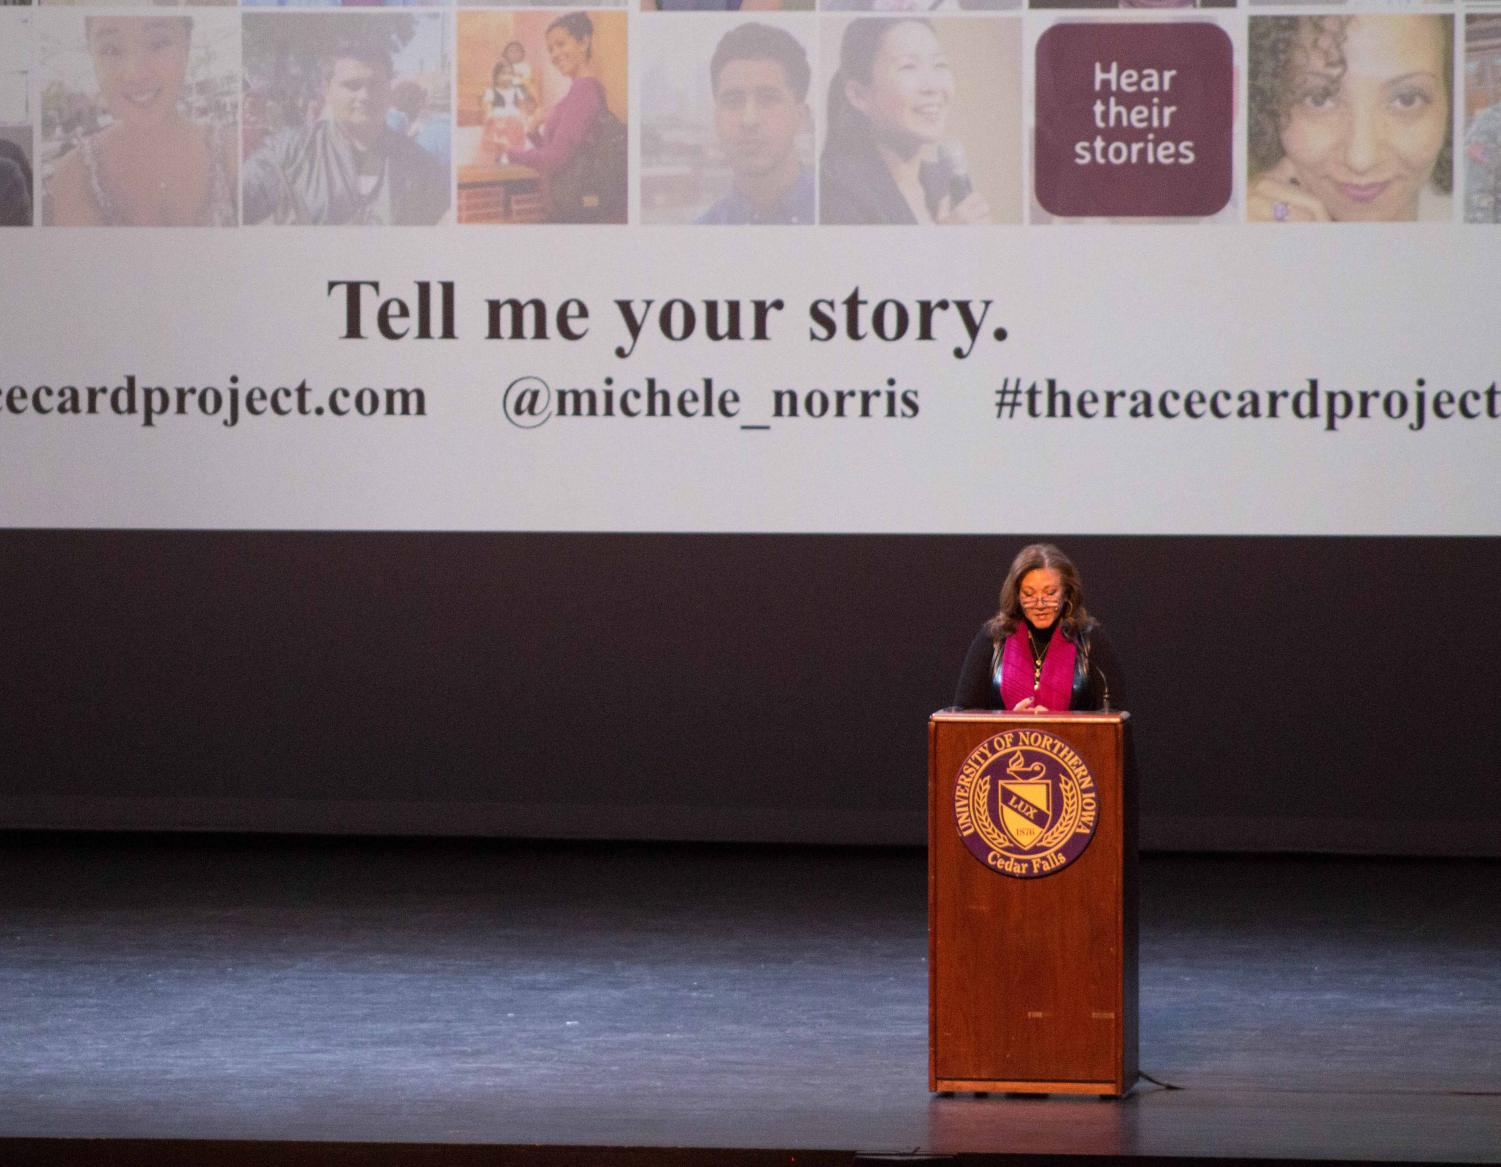 Michele Norris, an NPR journalist and author, gave a presentation called the